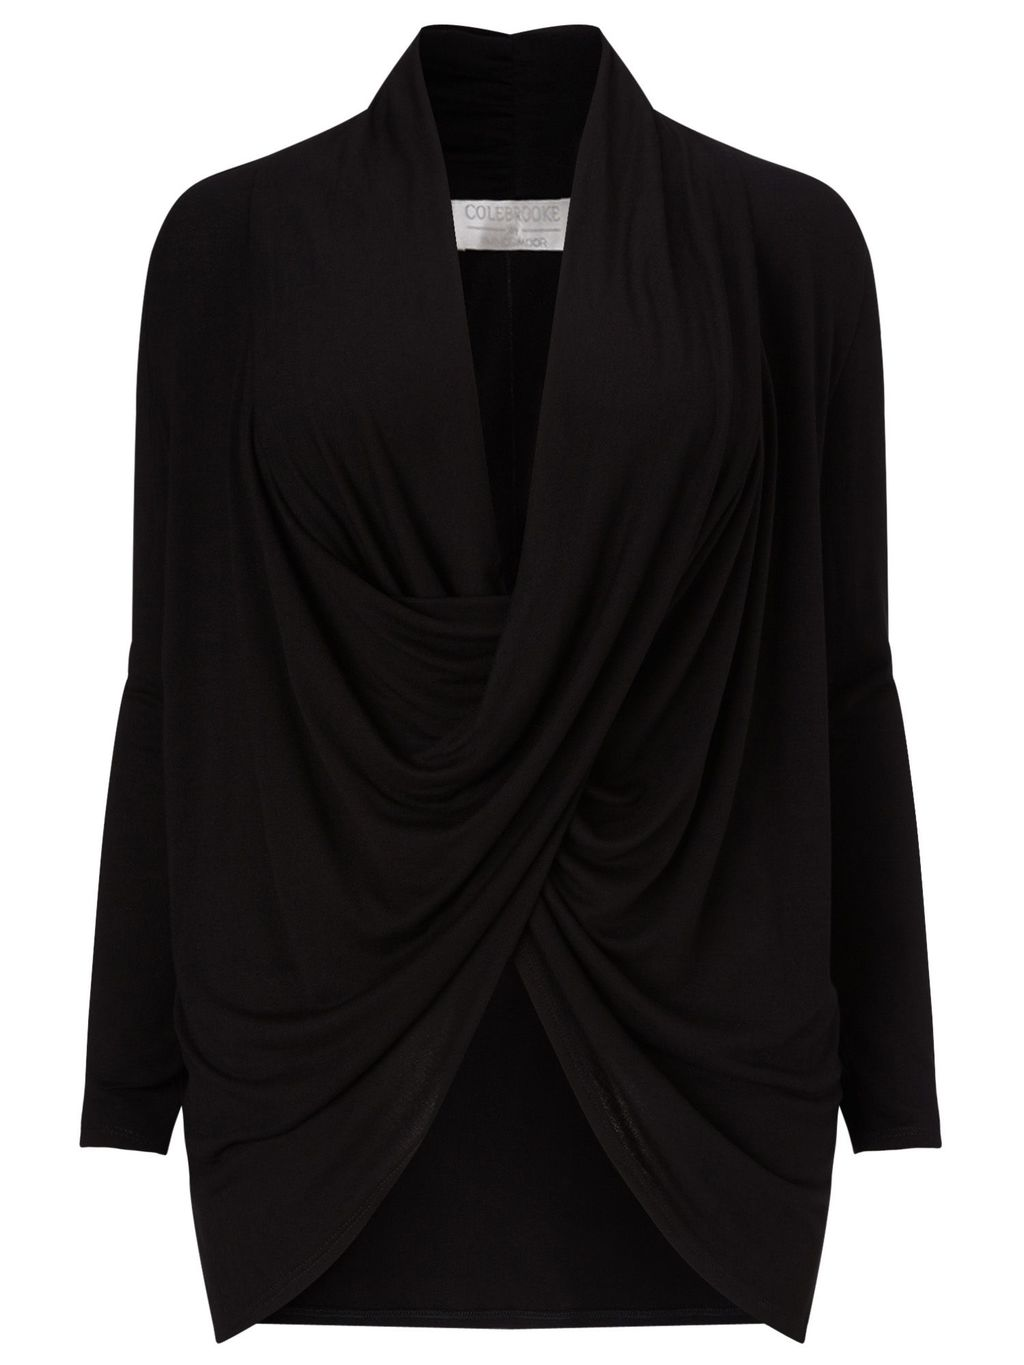 Black Drape Front Top, Black - neckline: v-neck; pattern: plain; predominant colour: black; occasions: evening; length: standard; style: top; fibres: viscose/rayon - 100%; fit: body skimming; sleeve length: long sleeve; sleeve style: standard; pattern type: fabric; texture group: jersey - stretchy/drapey; season: s/s 2016; wardrobe: event